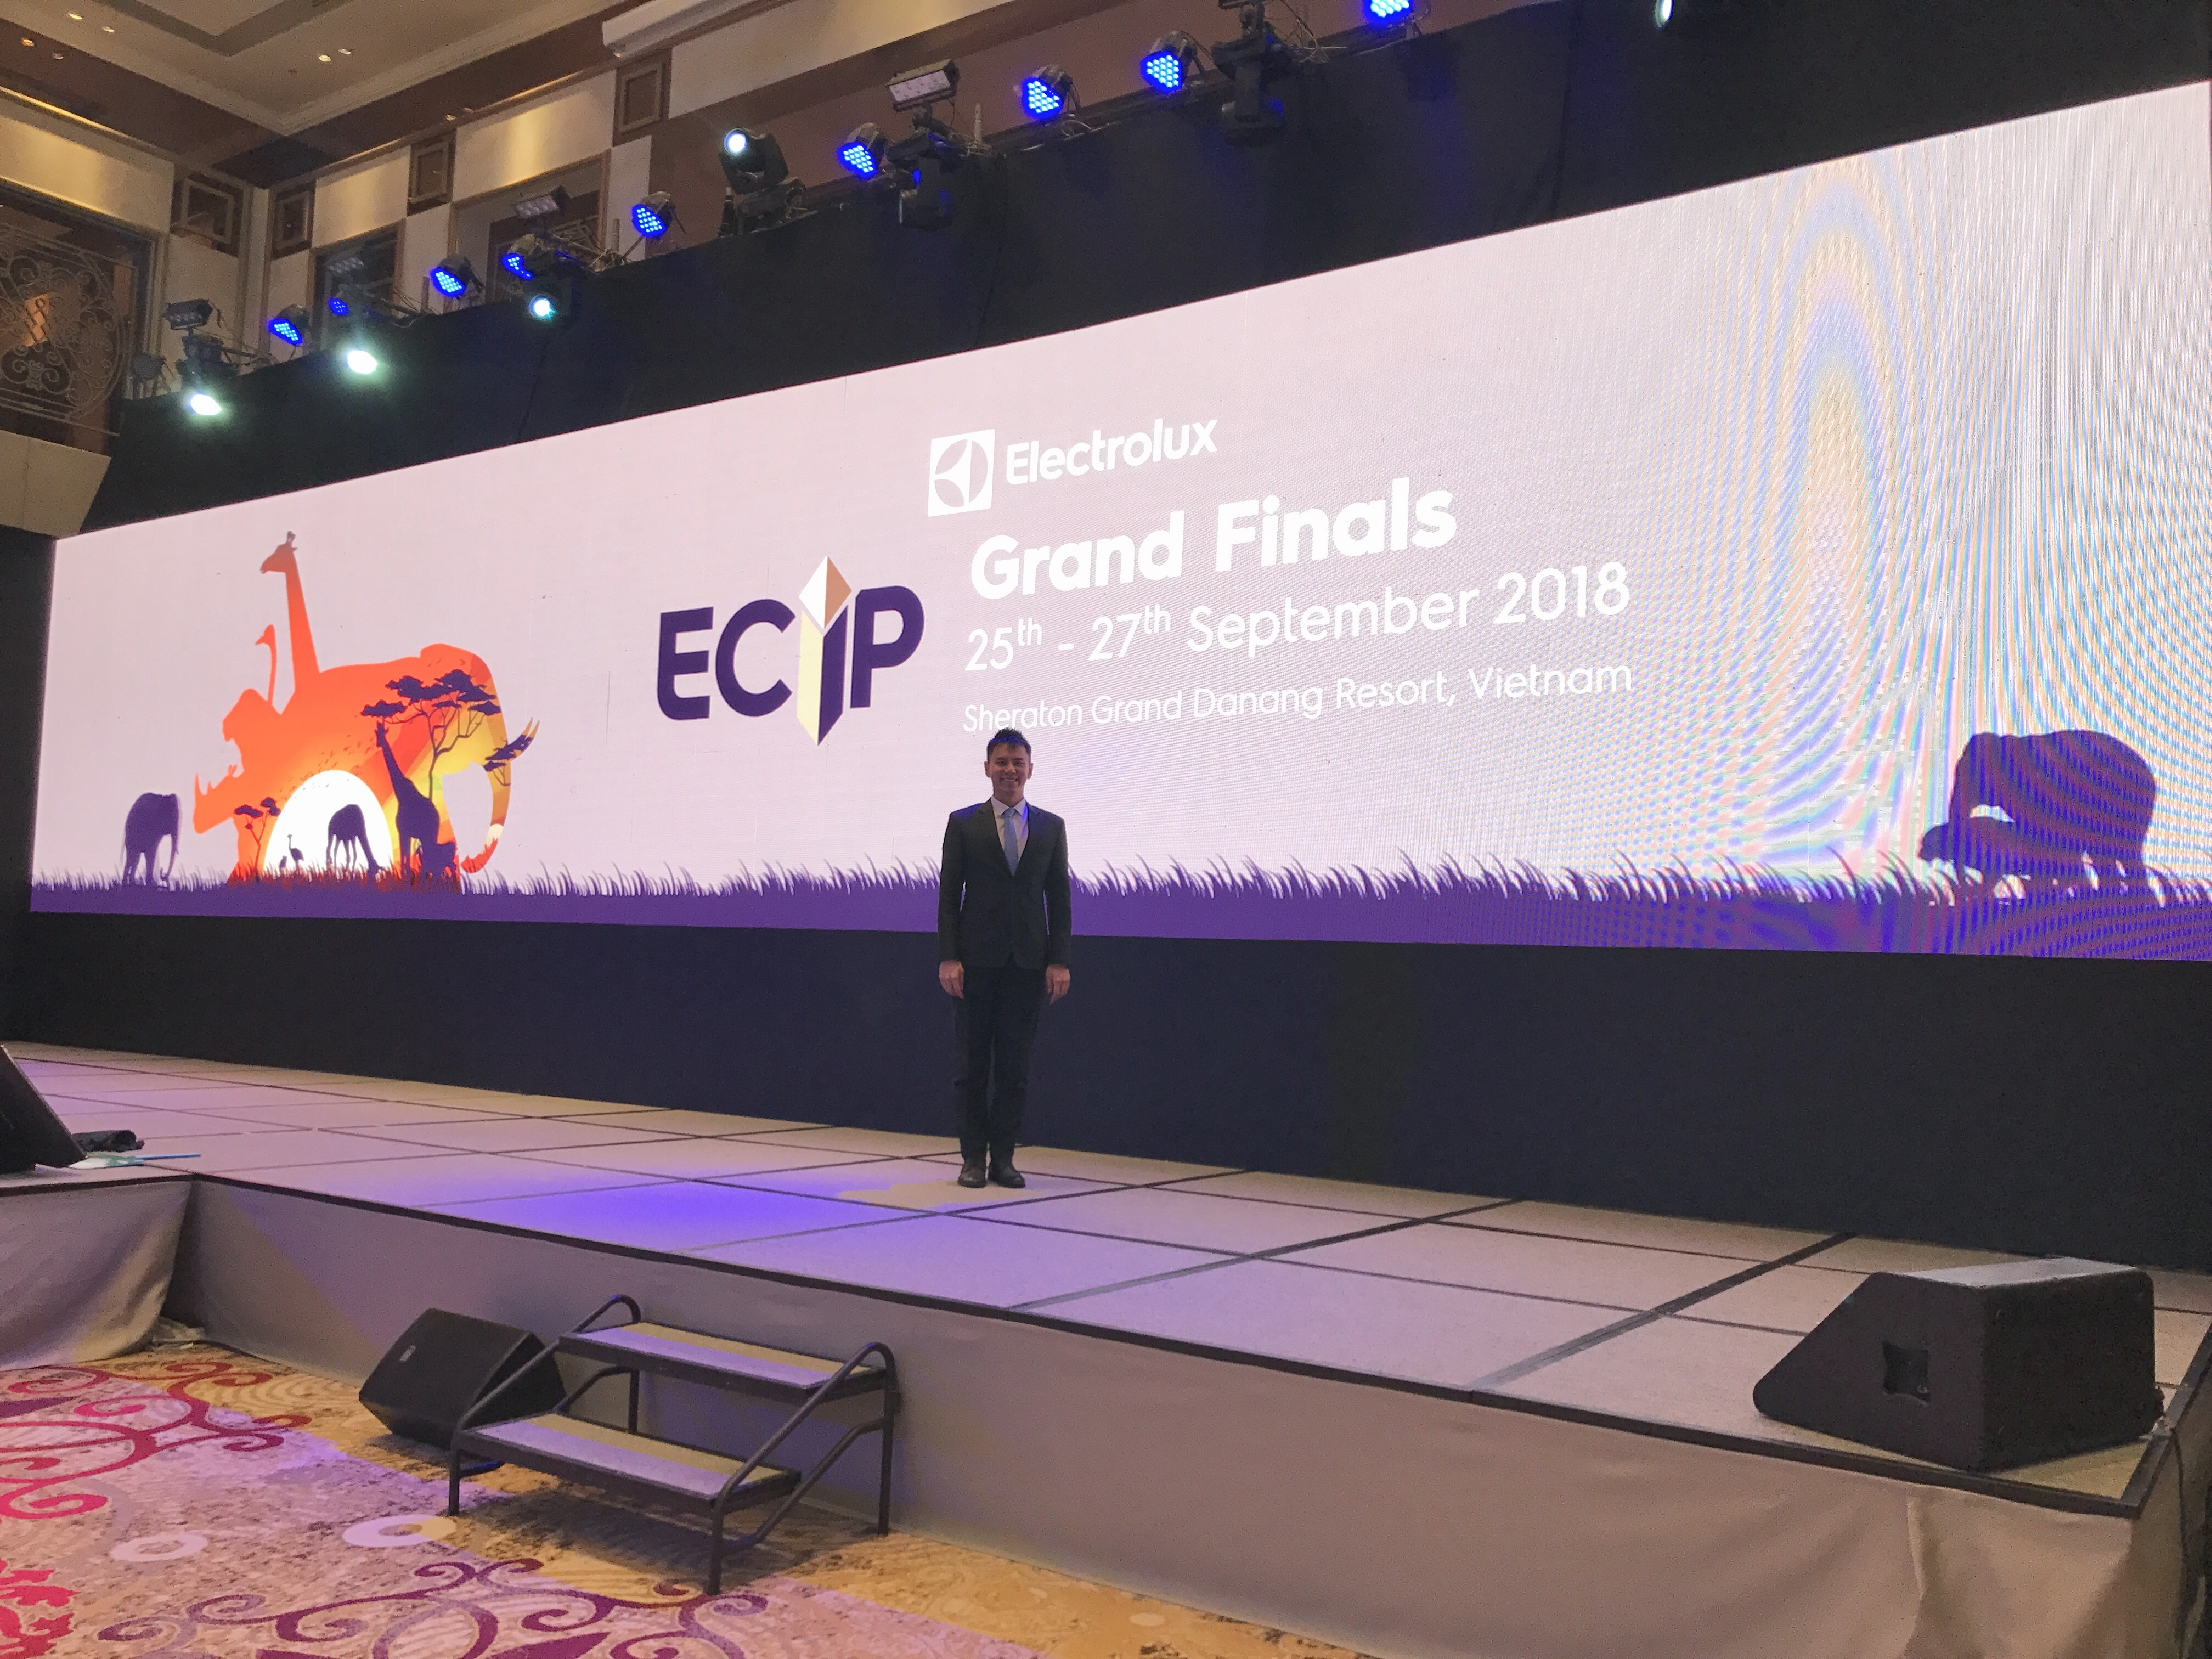 Electrolux grand finals in Da Nang Vietnam - overseas South east asia event emcee lester